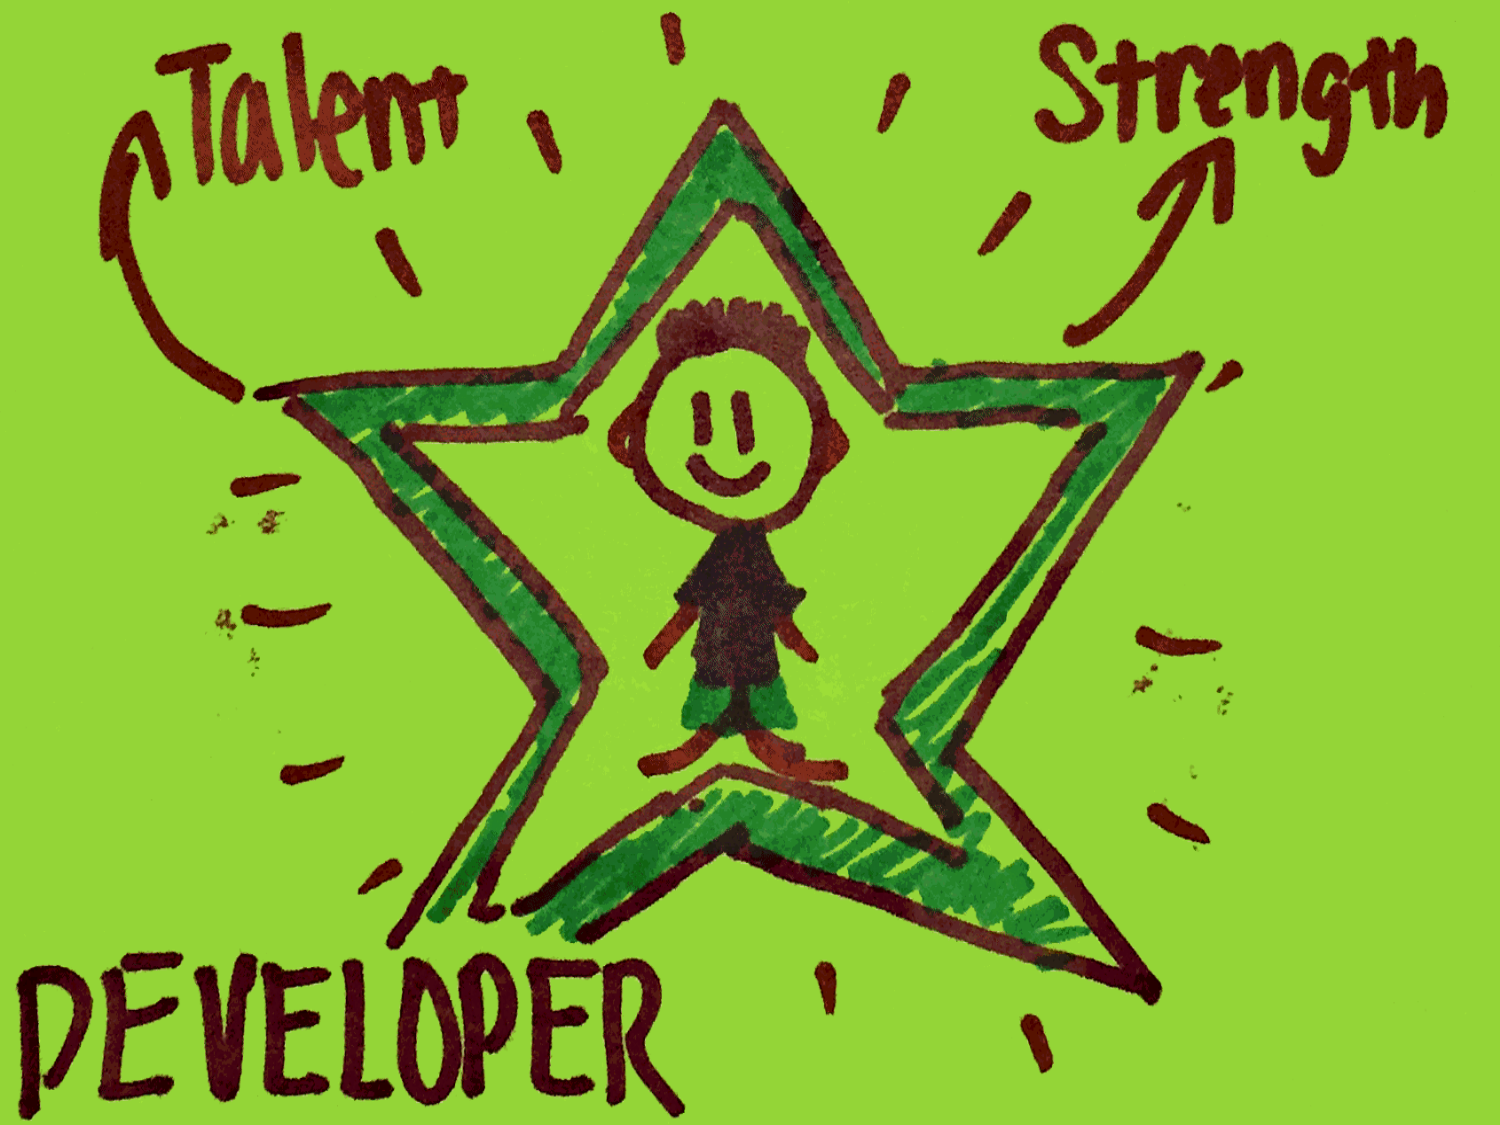 Developer StrengthsFinder Singapore From Talent to Strength